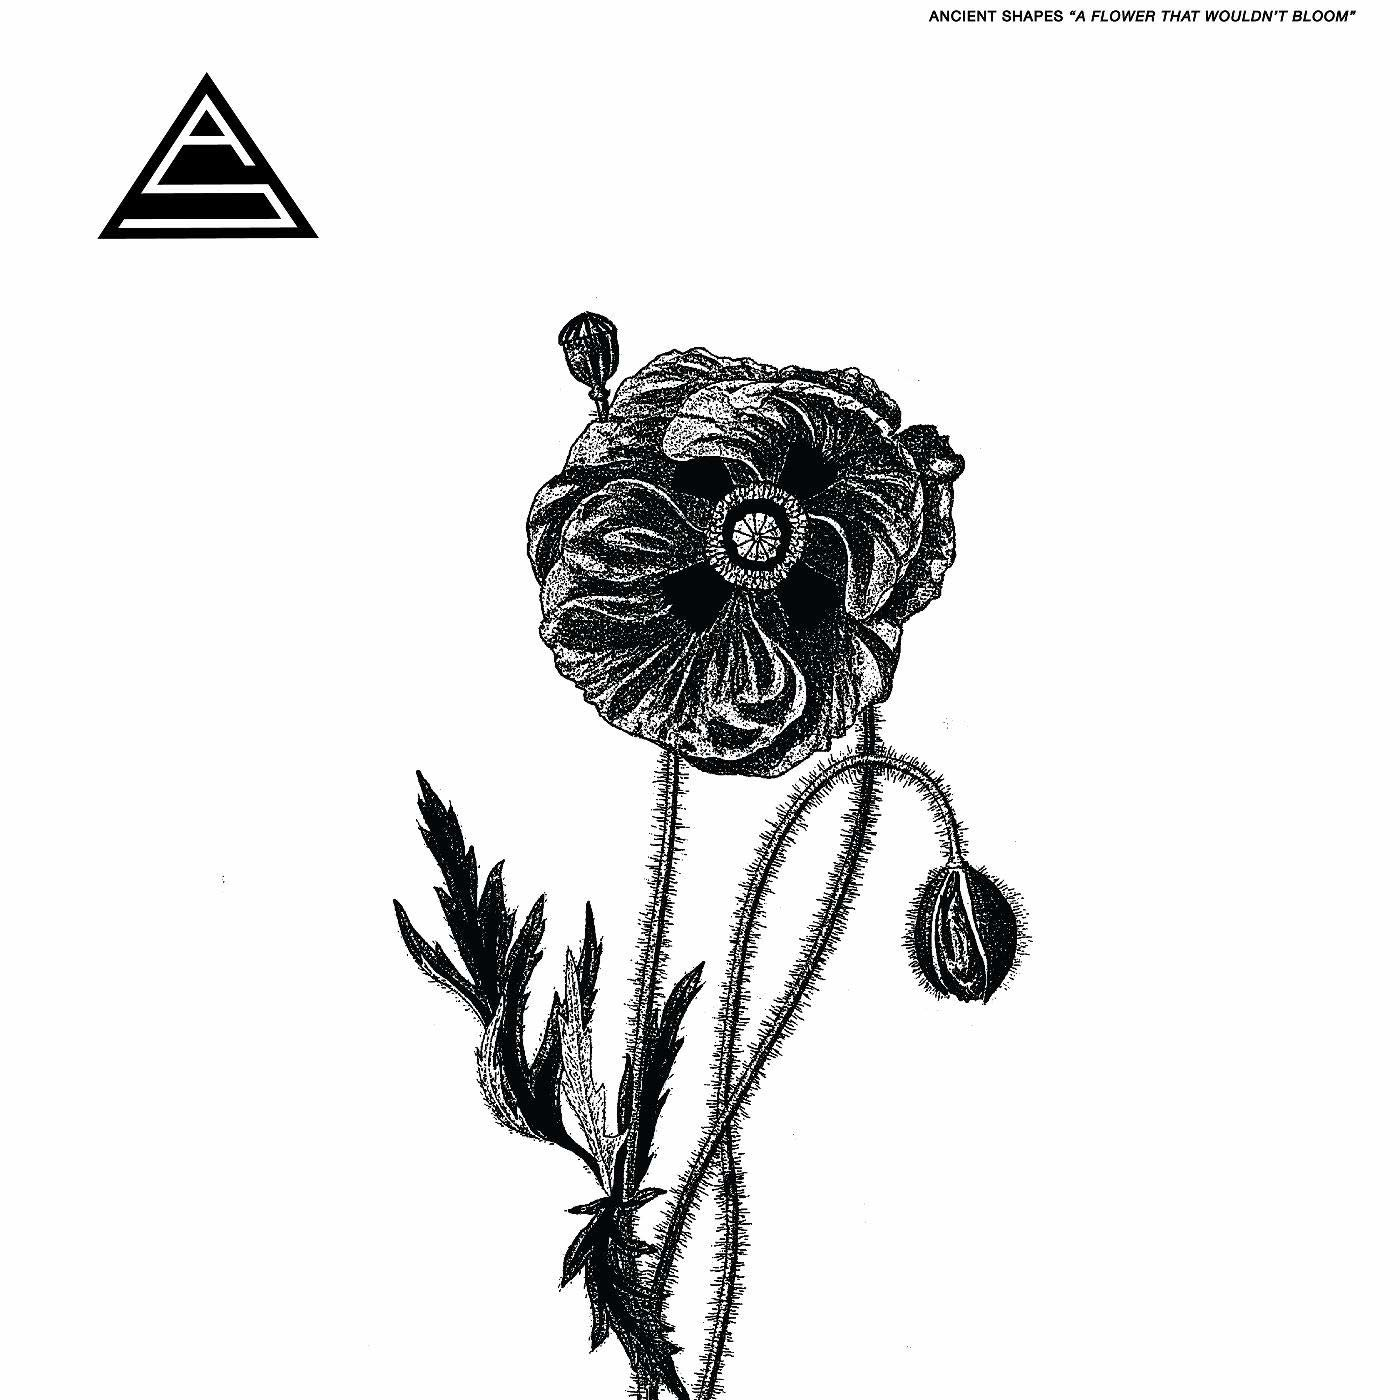 Ancient Shapes - A Flower That Wouldn't Bloom